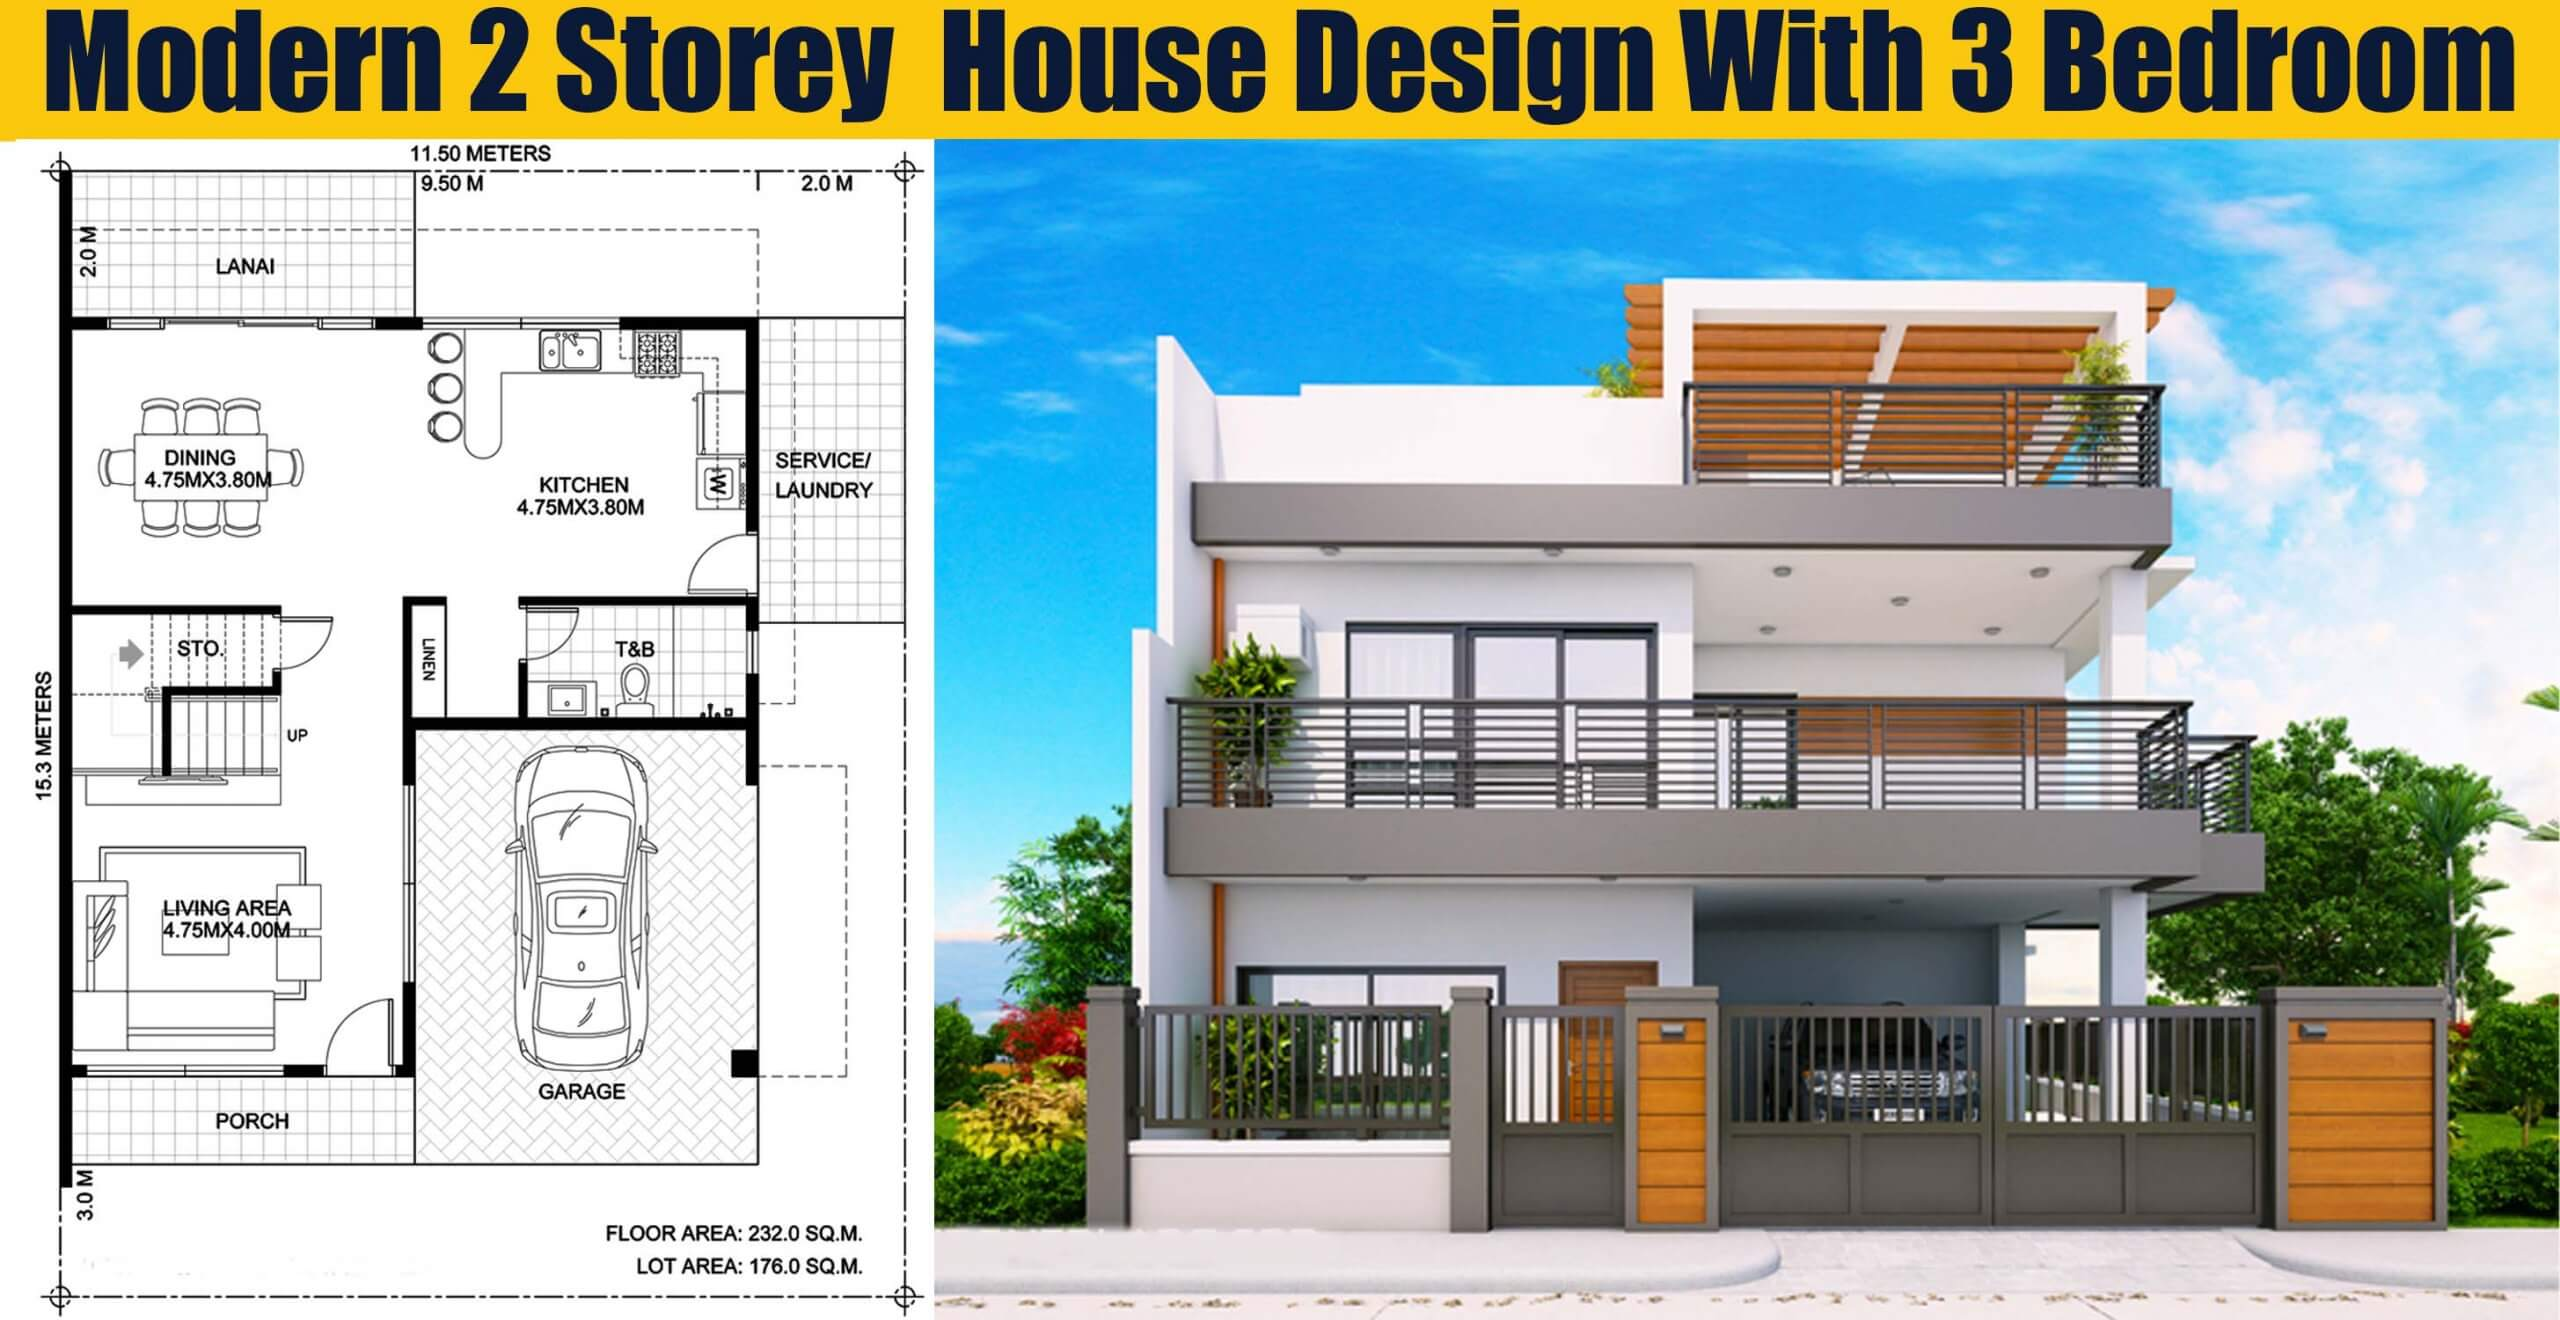 Modern 2 Storey House Design With 3 Bedroom - Engineering ...